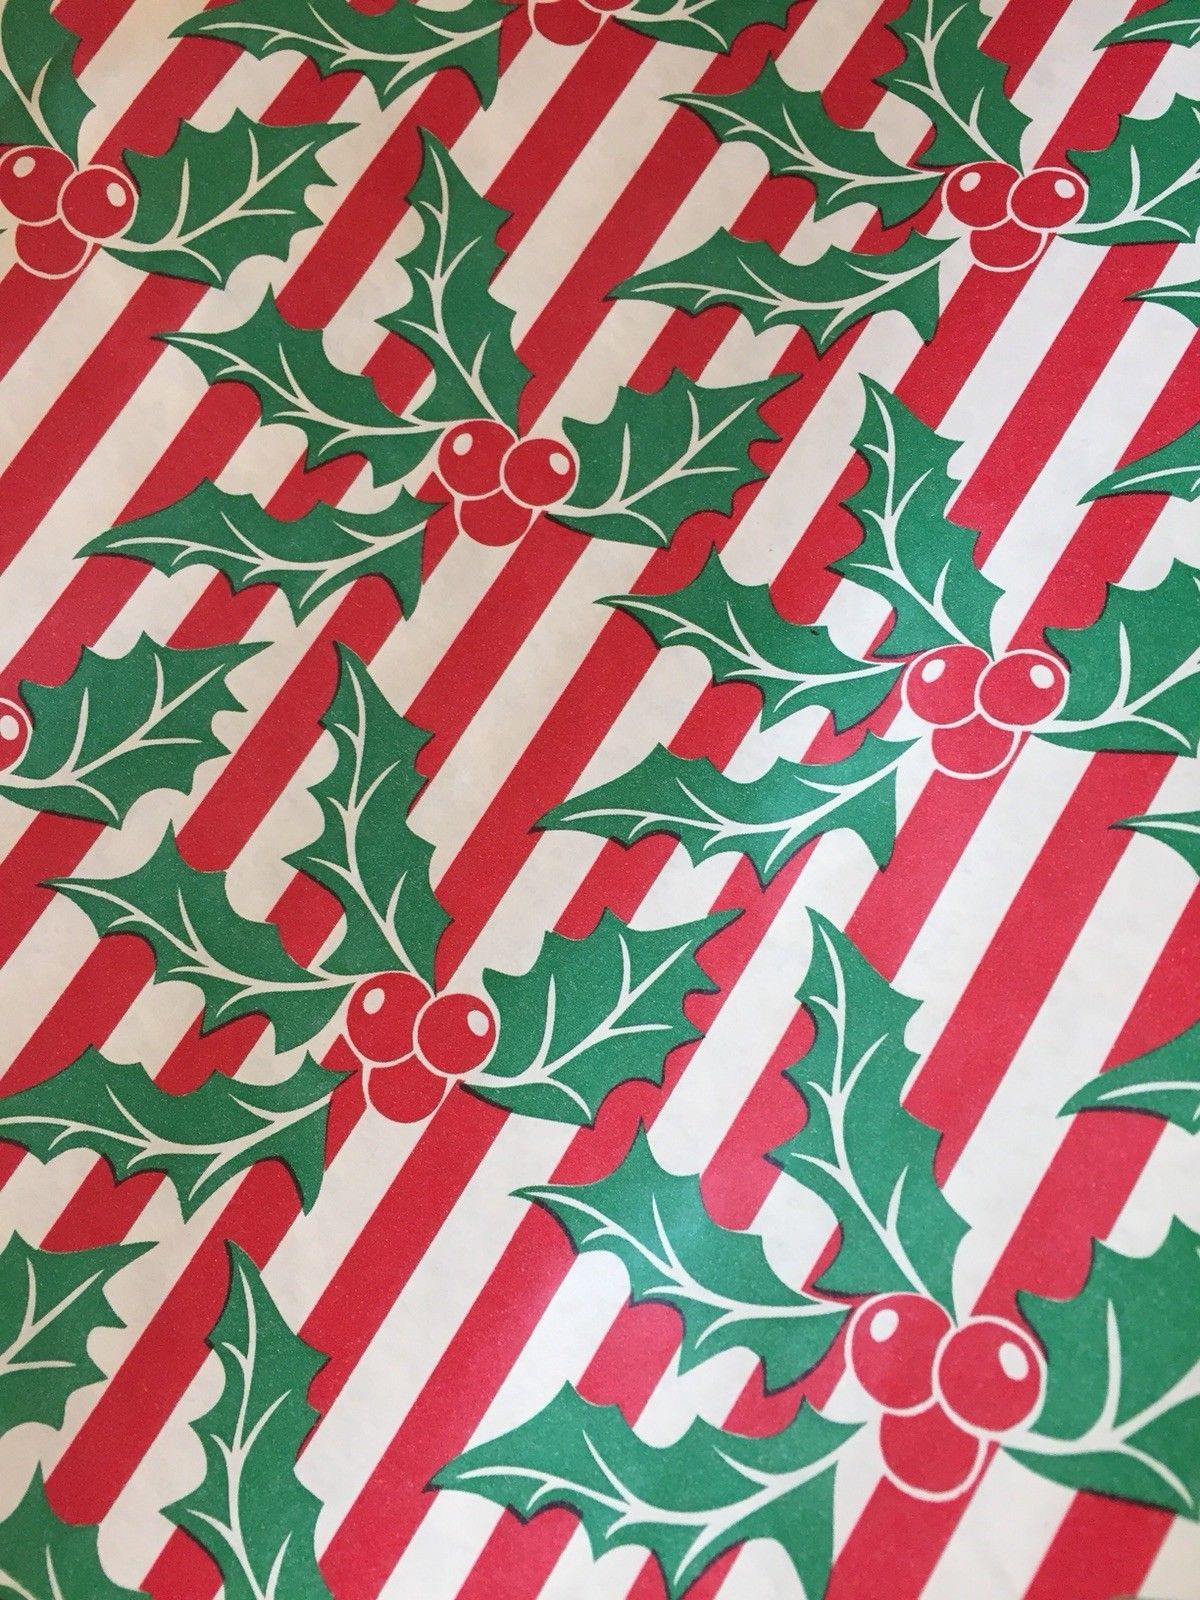 True 50 S Mcm Vintage Christmas Holly Stripe Gift Wrapping Paper Roll 3 Yards Ebay Xmas Wrapping Paper Gift Wrapping Paper Vintage Christmas